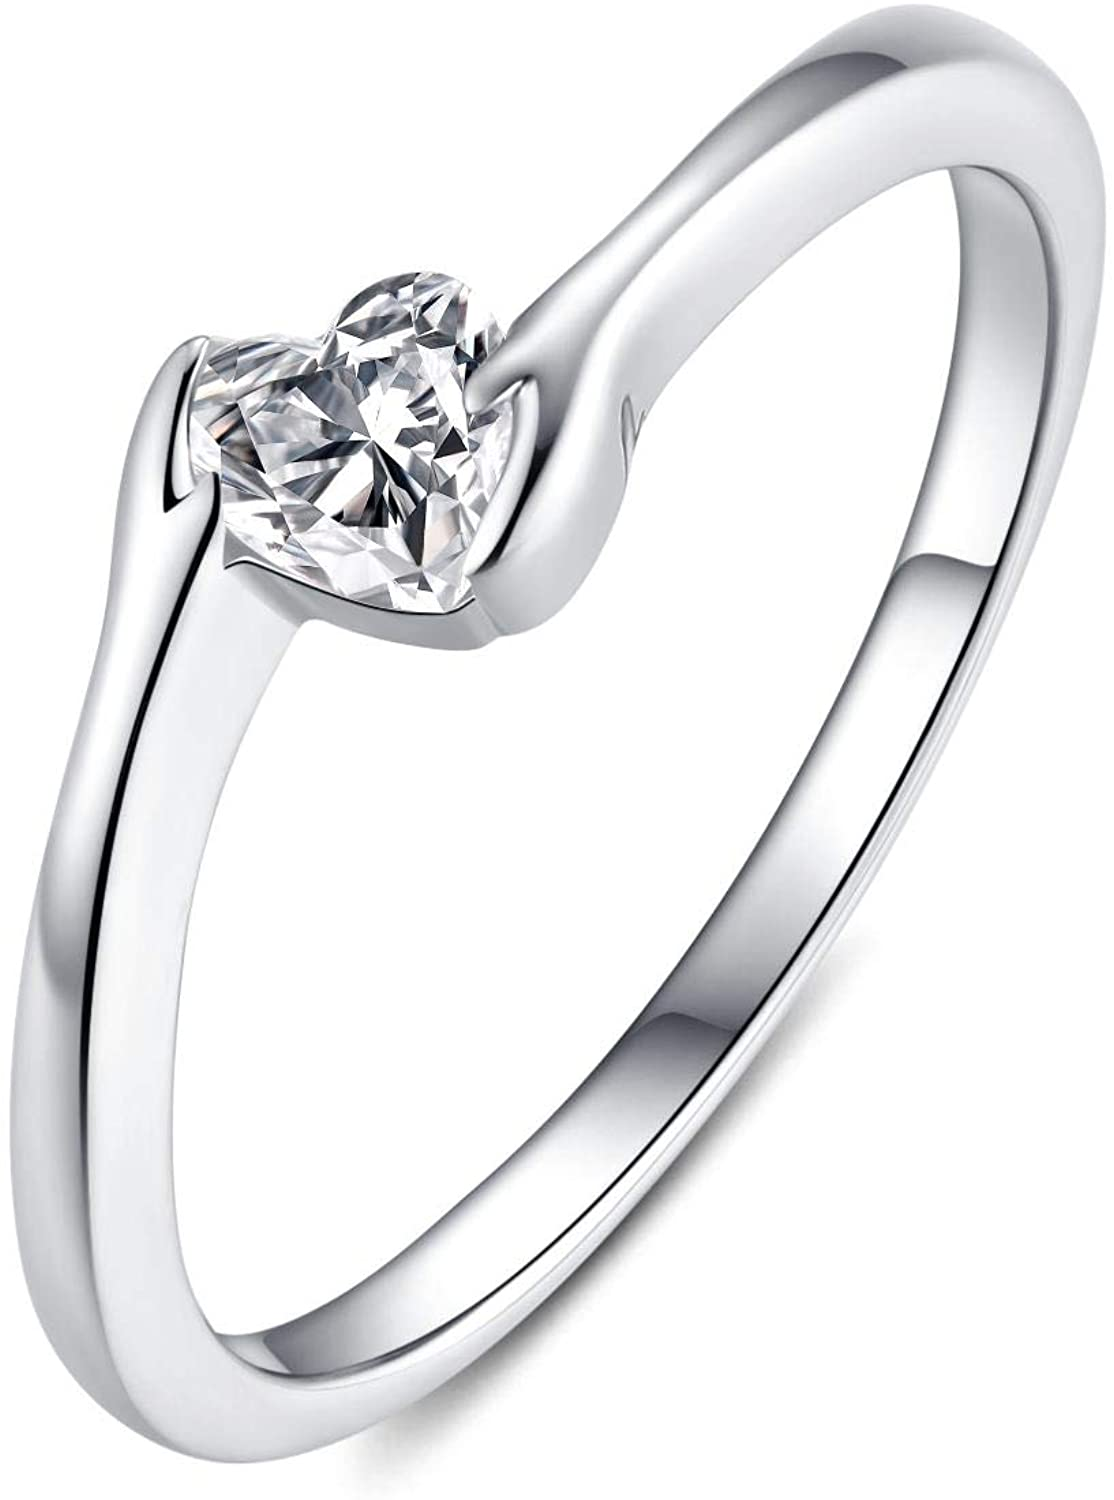 Presentski Promise Rings for Women, 925 Sterling Silver CZ Heart Solitaire Engagement Ring Valentines Day Birthday